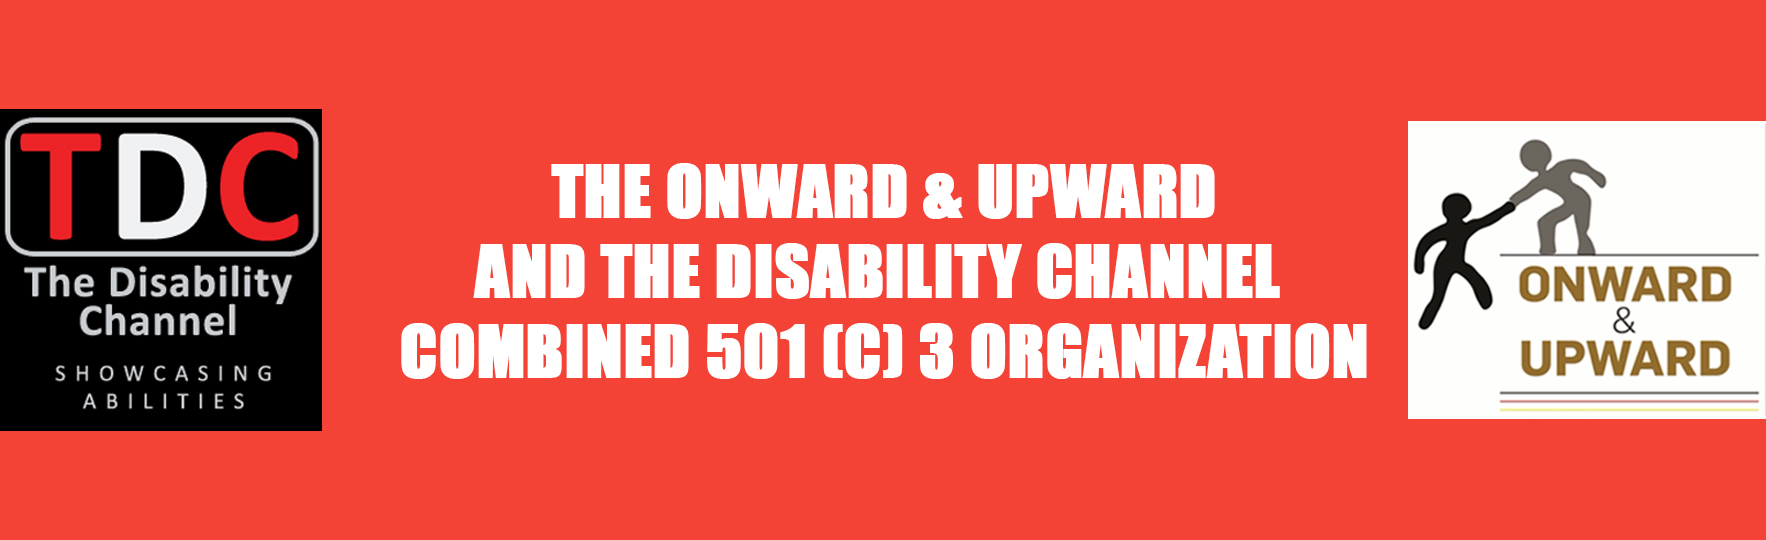 The Onward & Upward and TDC combined 501(c) 3 organizations